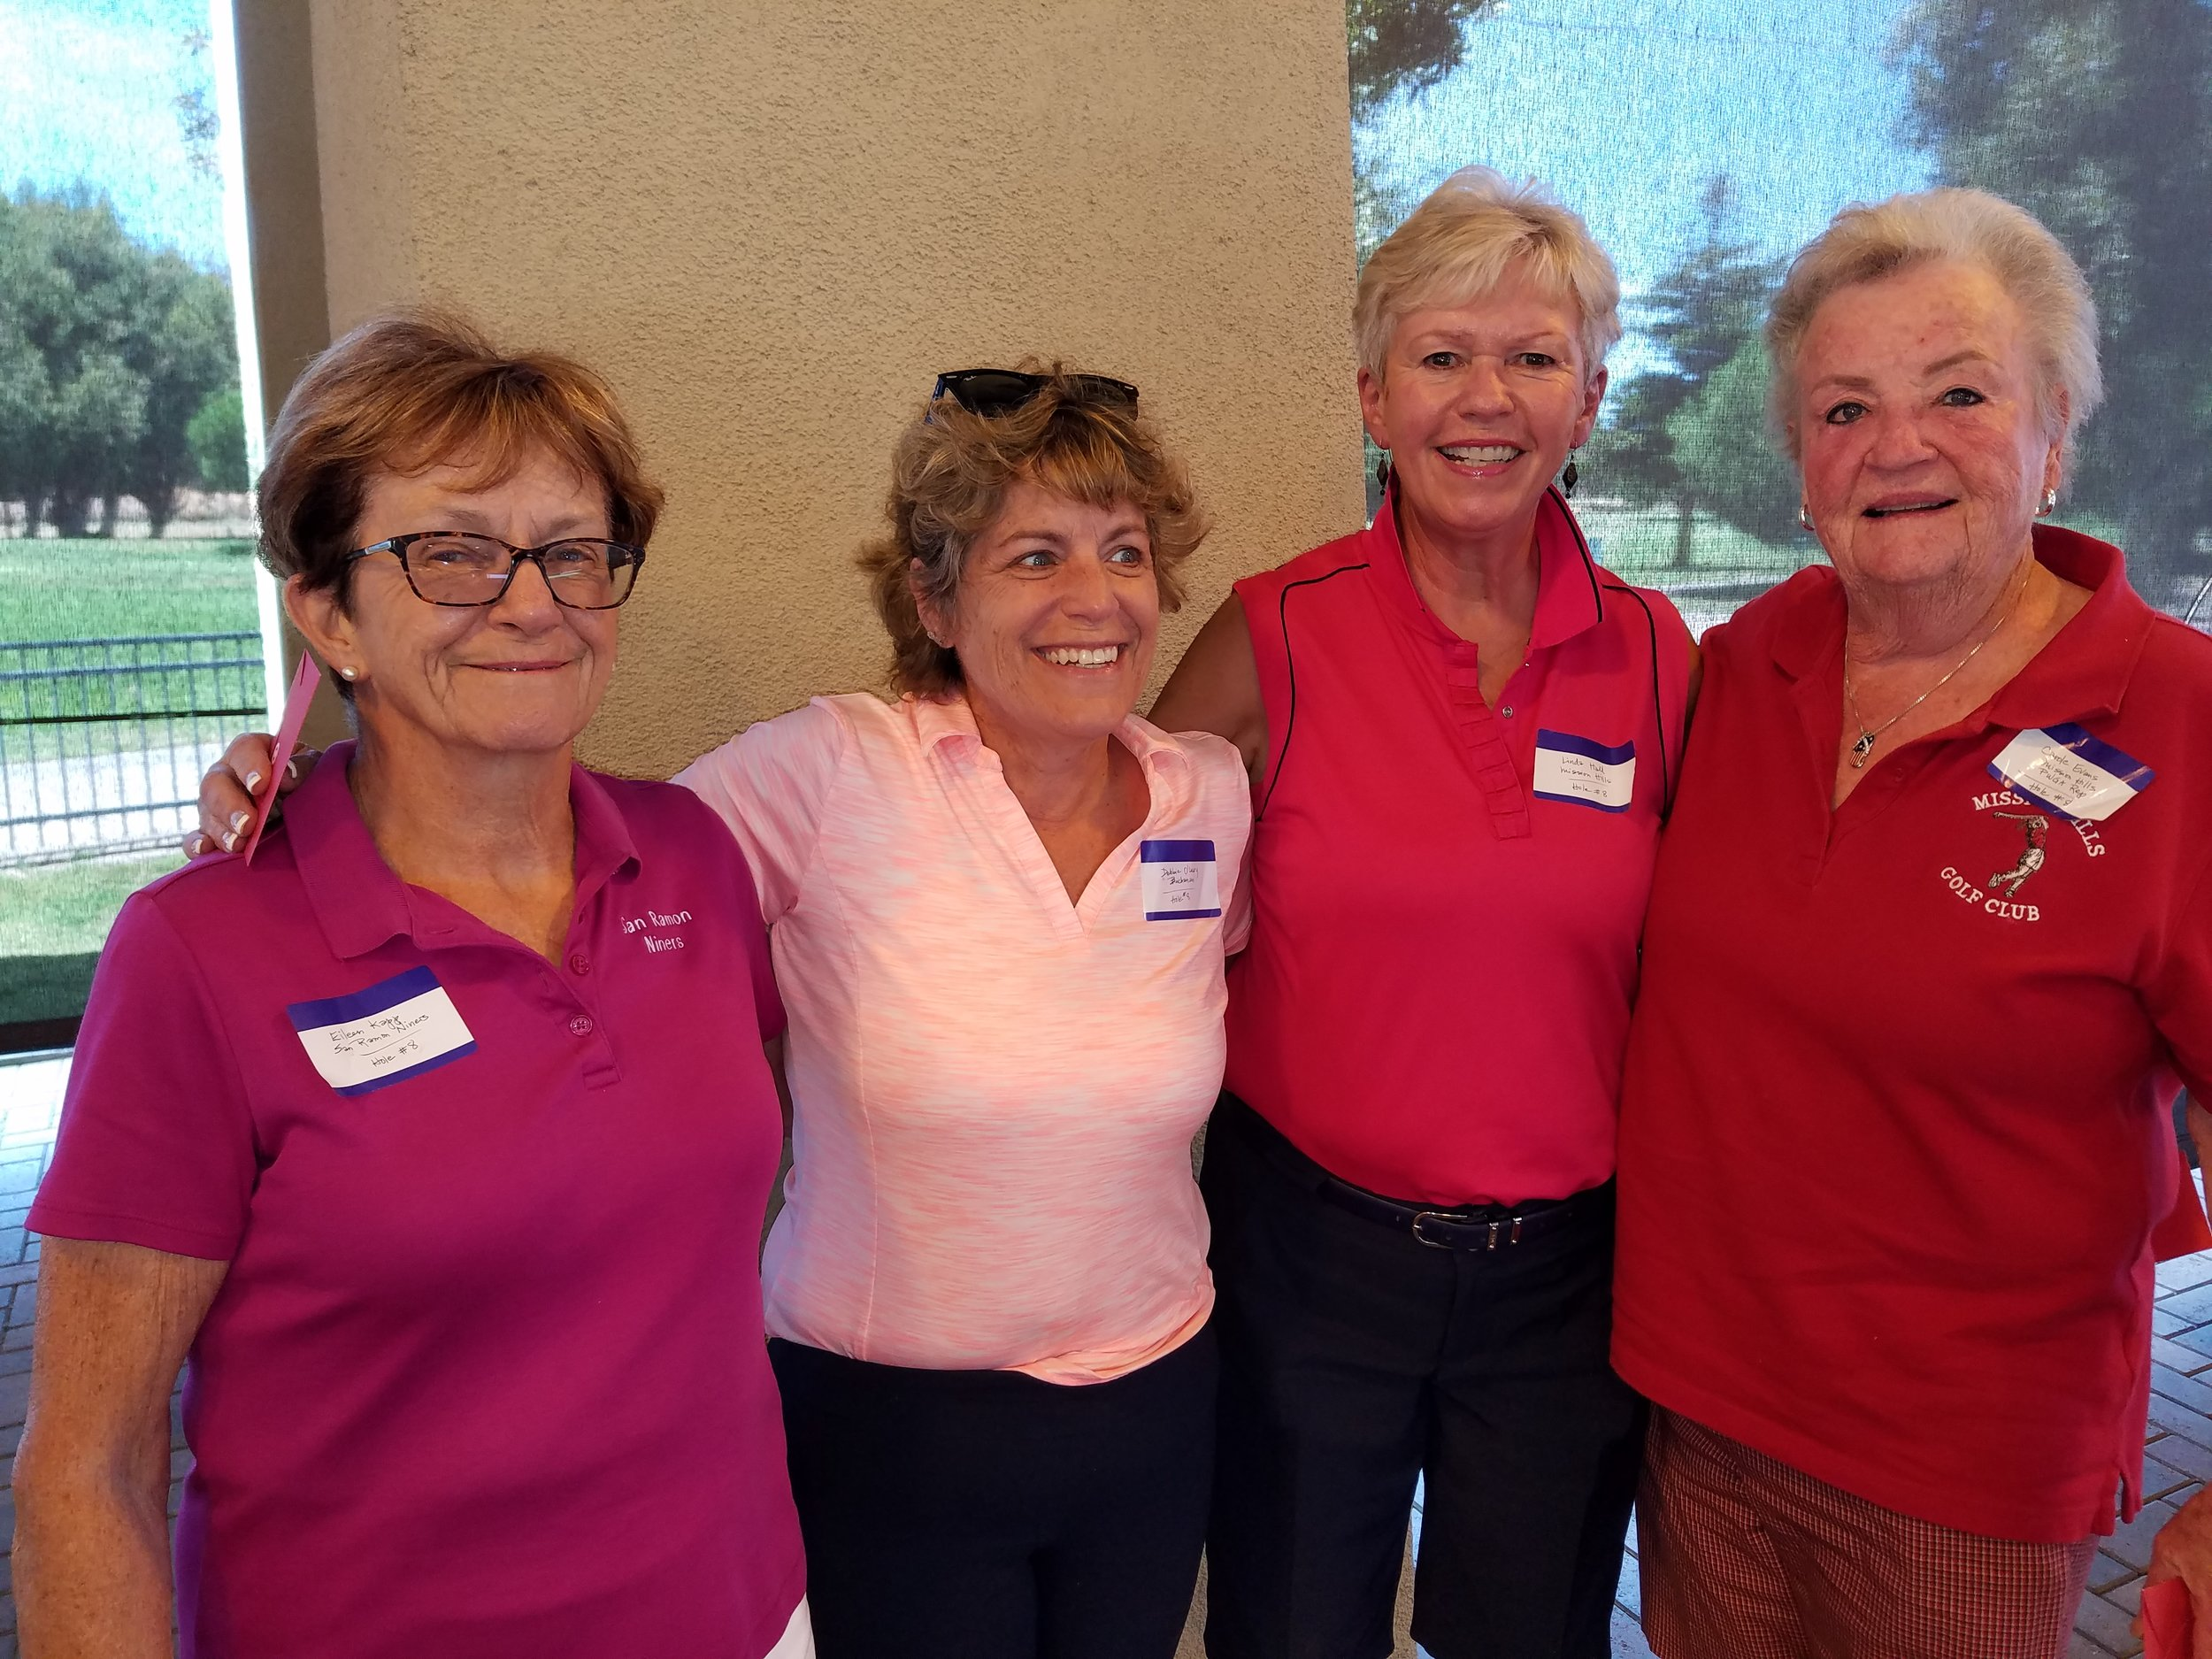 4th Place - Carole Evans, Linda Hall, Eileen Kapp and Debbie O'Leary